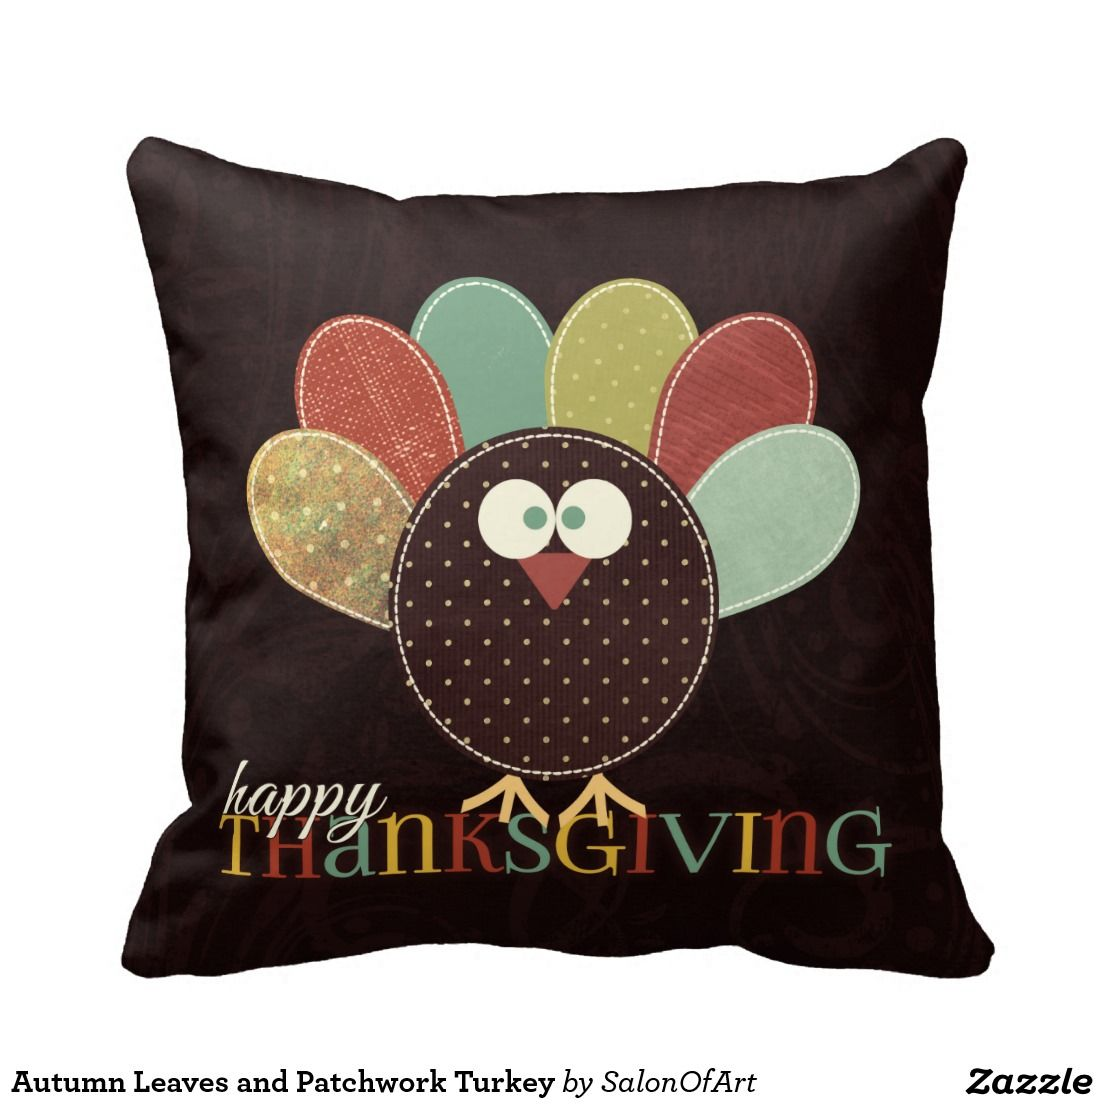 Autumn Leaves and Patchwork Turkey Throw Pillow